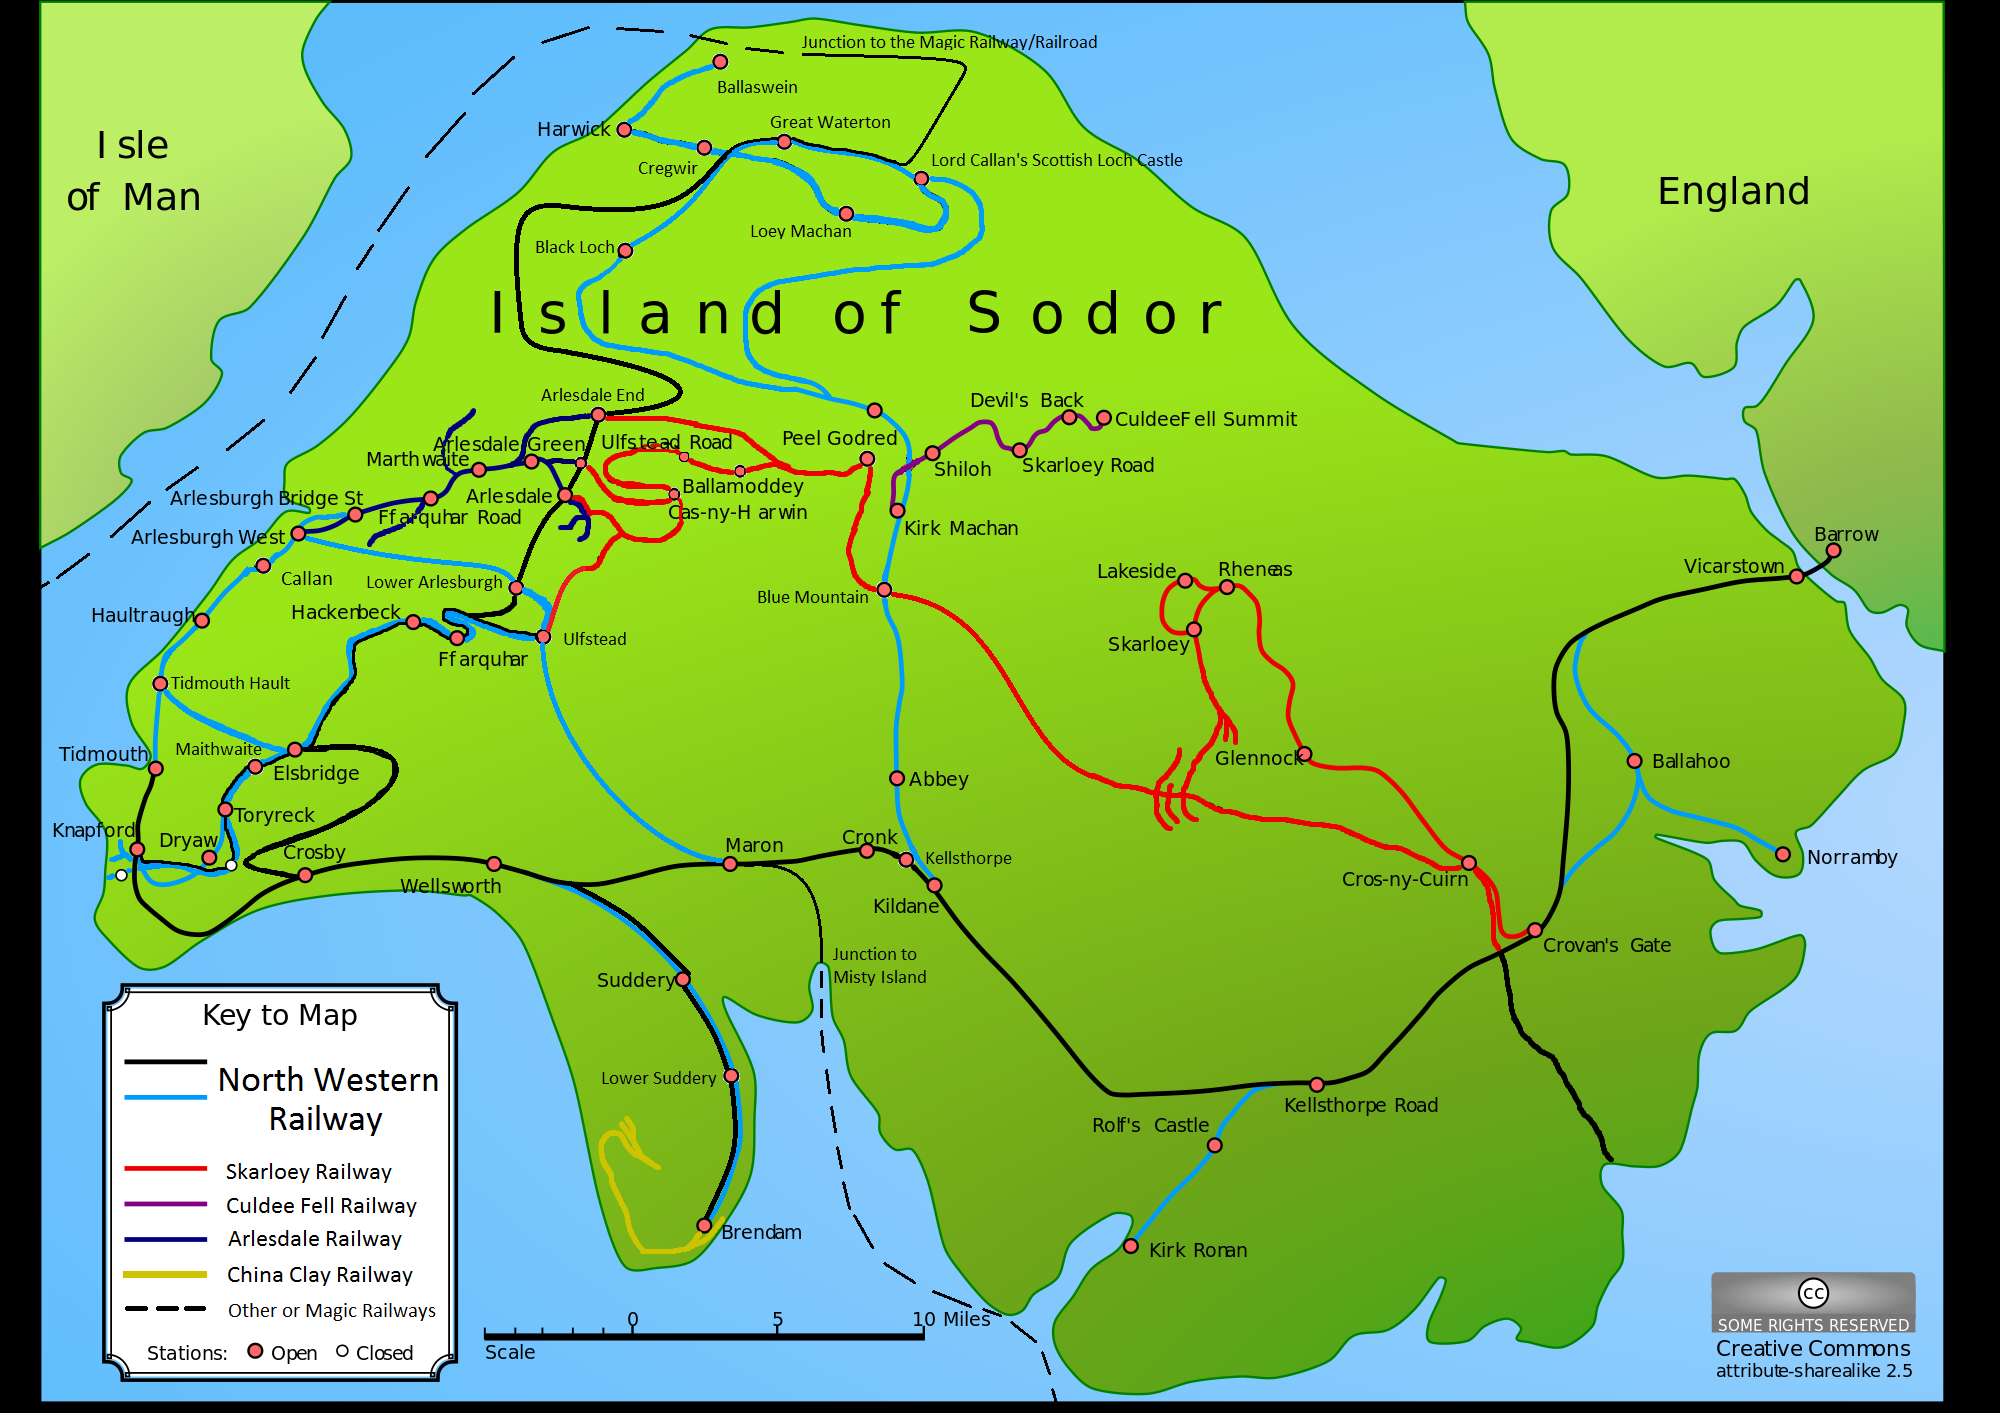 island of sodor present day map by peachlover94 on deviantart